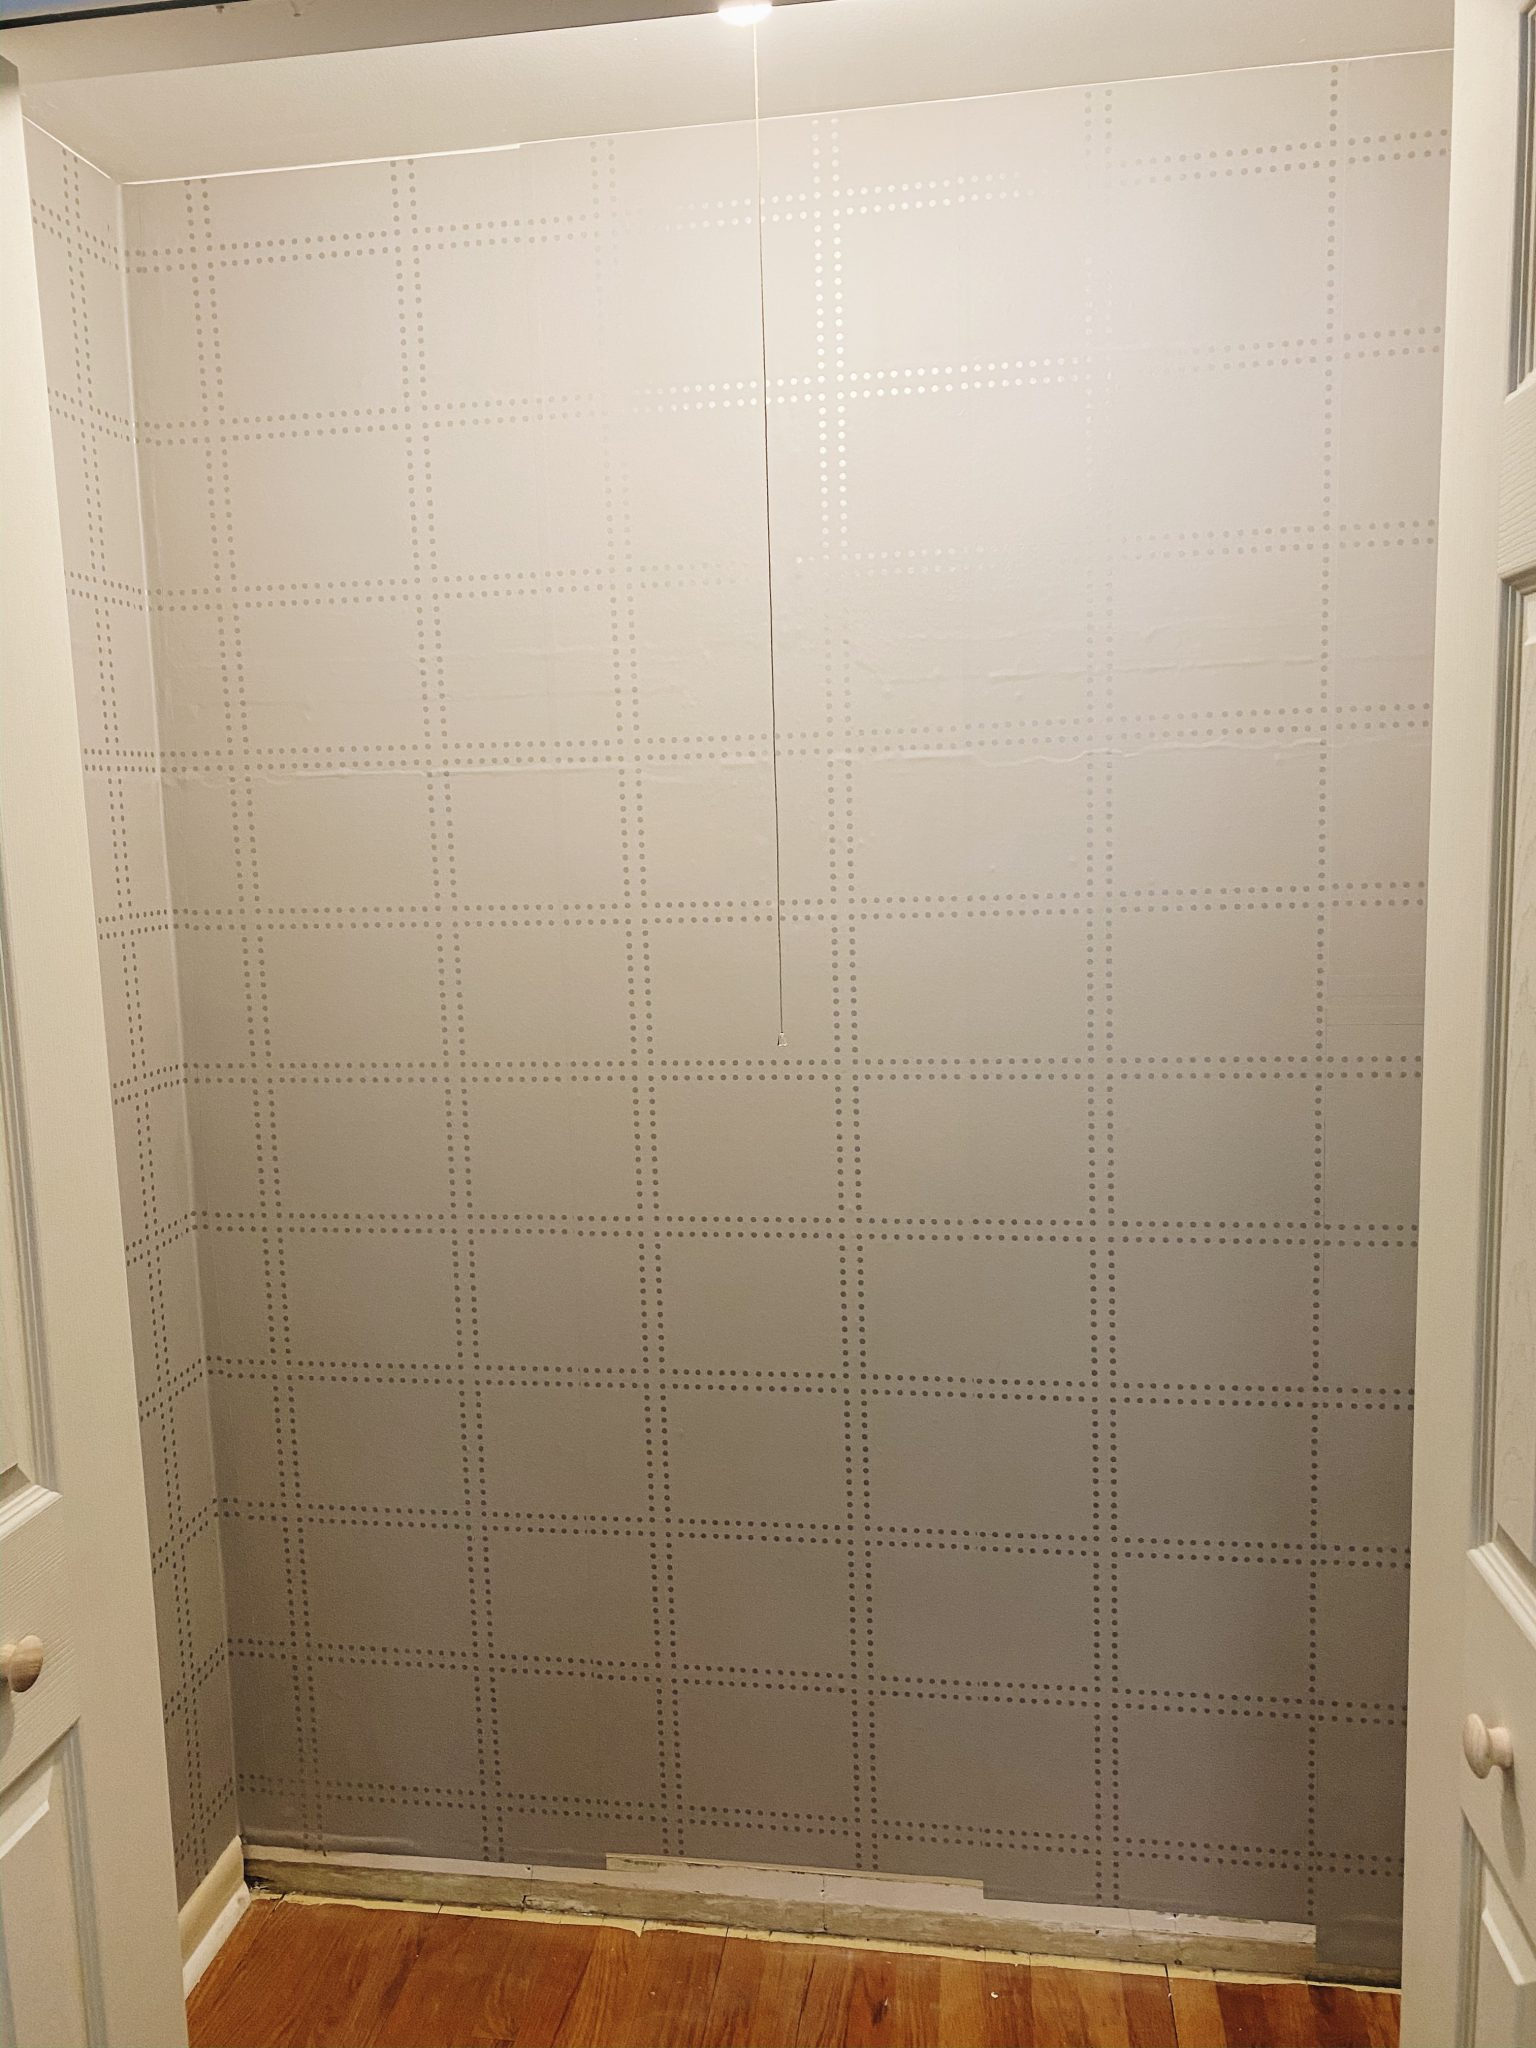 DIY Closet Makeover | Daily Splendor Life and Style Blog | work in progress #closetorganizer #smallcloset #smallspaces #organizedcloset #semicustomcloset #budgetcloset #diycloset #diyhomeproject #thehomedepot #homedepot #beforephoto #wallpaper #closetwithwallpaper